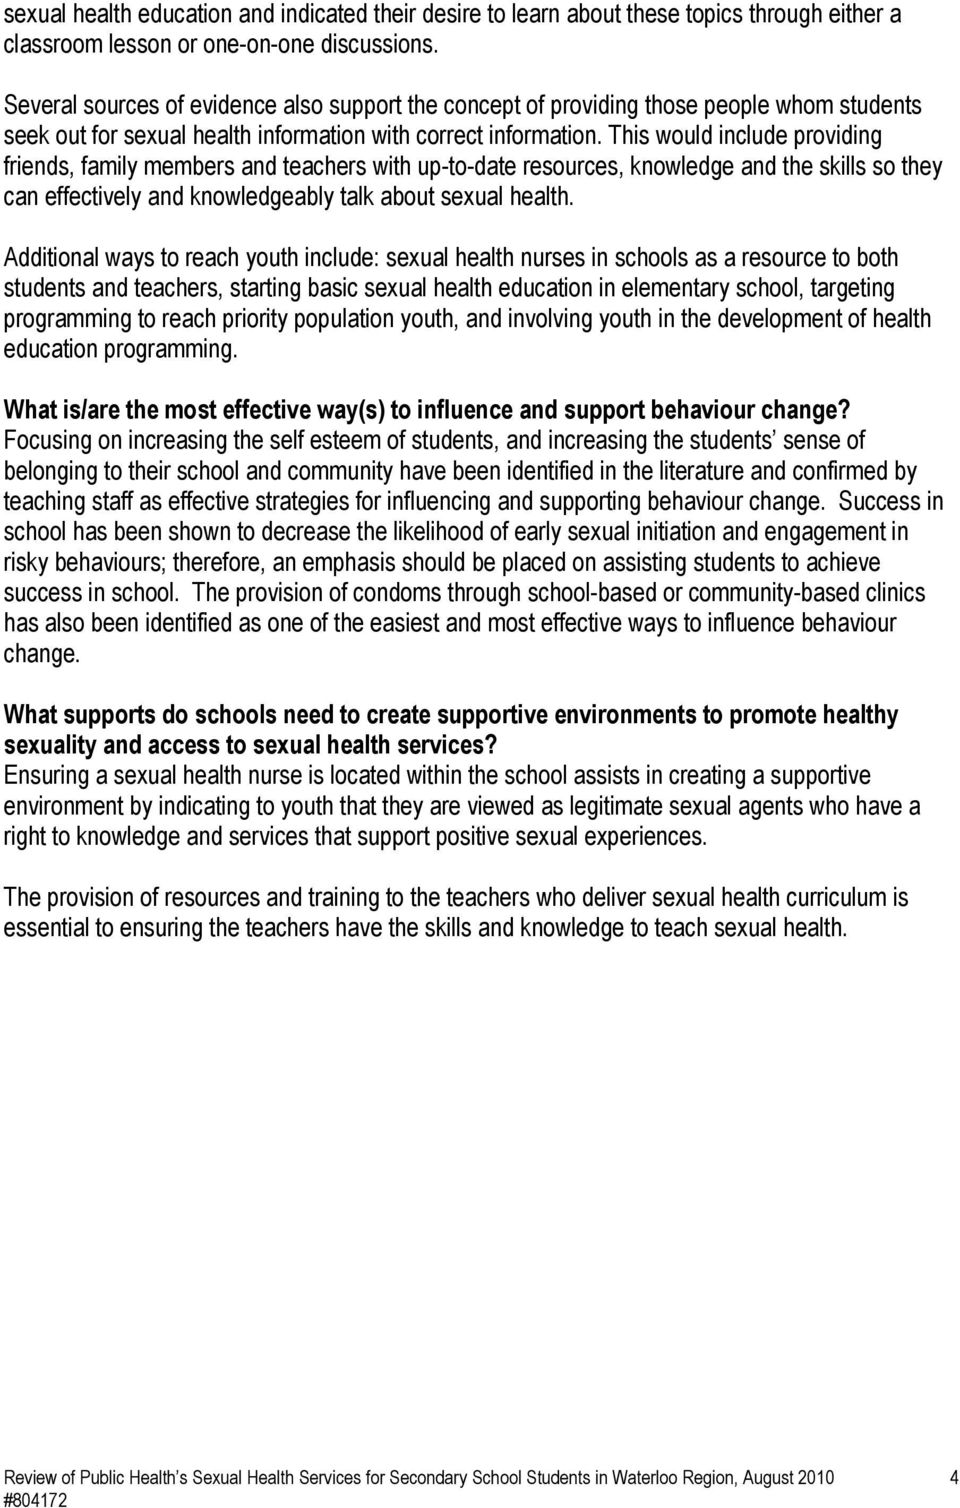 Review of Public Health s Sexual Health Services for